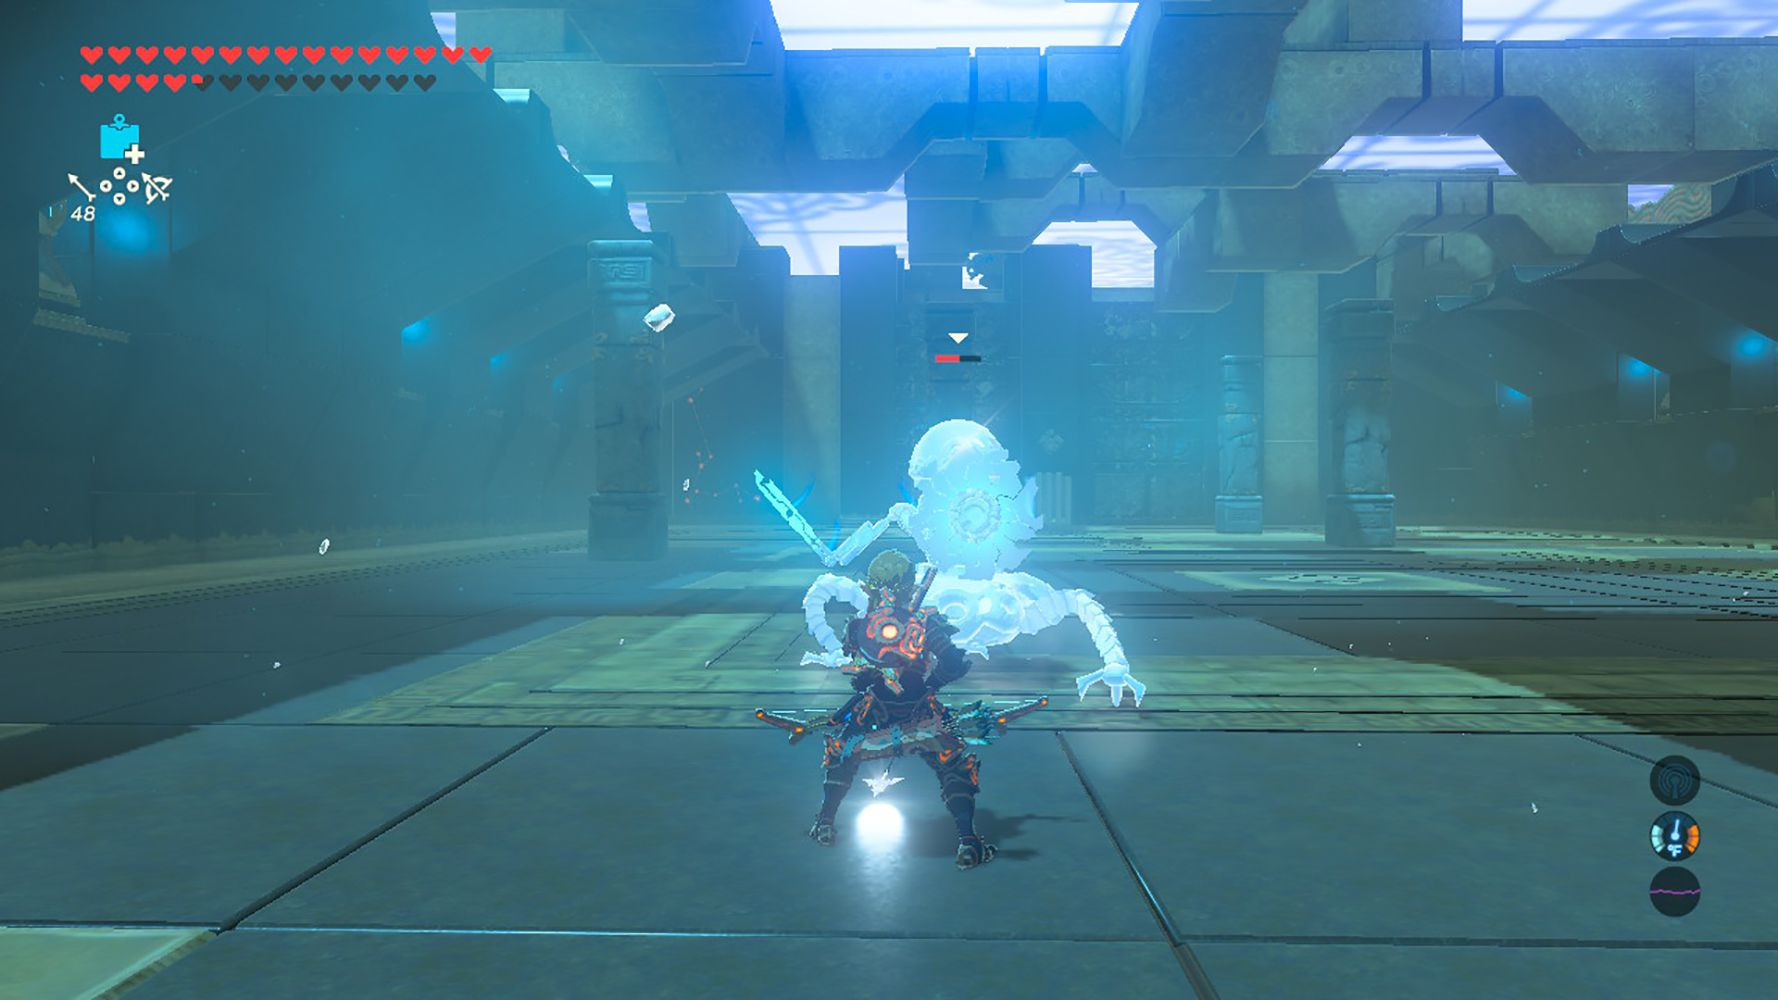 Screenshot of freezing a Guardian in Breath of the Wild